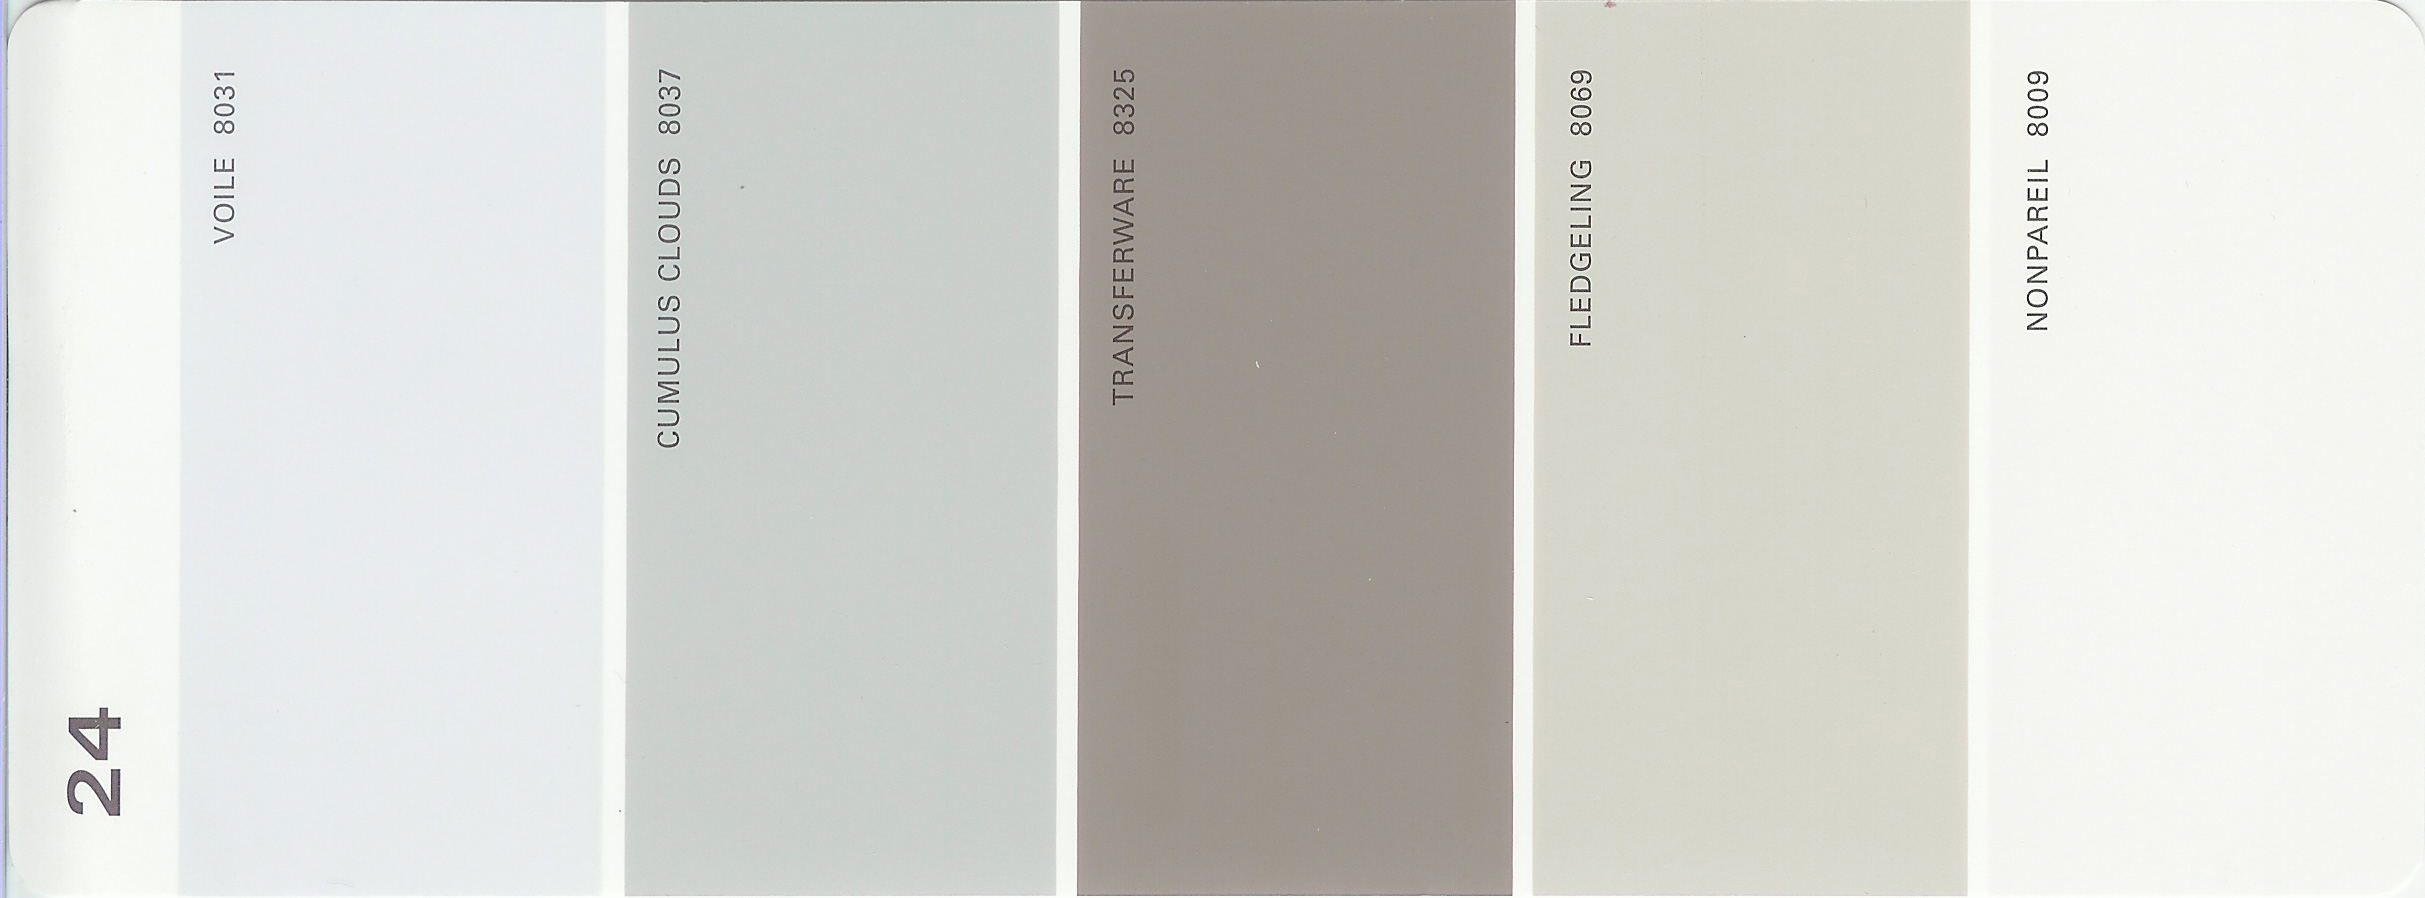 Martha stewart paint 5 color palette card 24 for Paint color palette